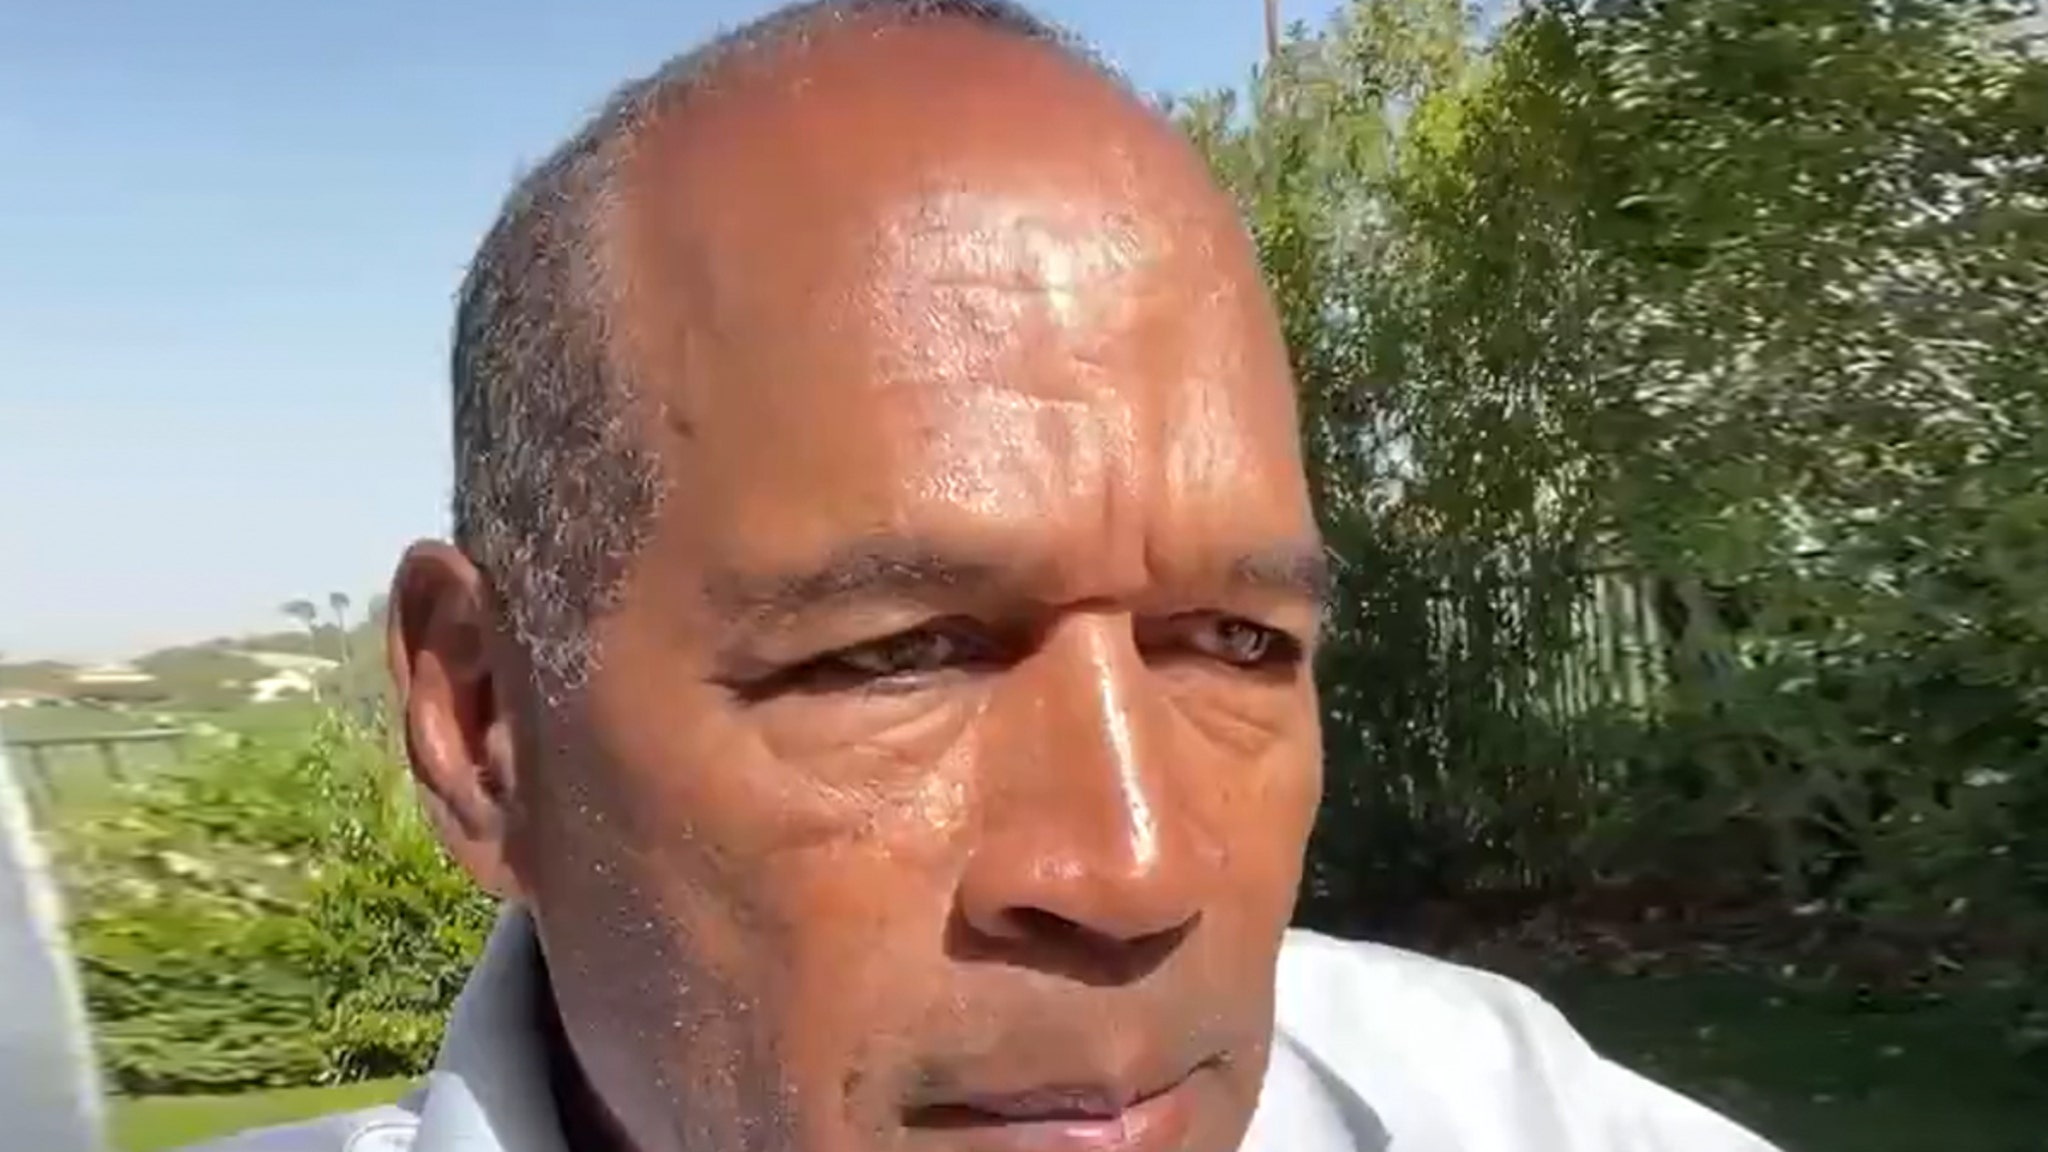 O.J. Simpson Says He Feared Death During Bout With COVID, 'I Couldn't Catch My Breath'